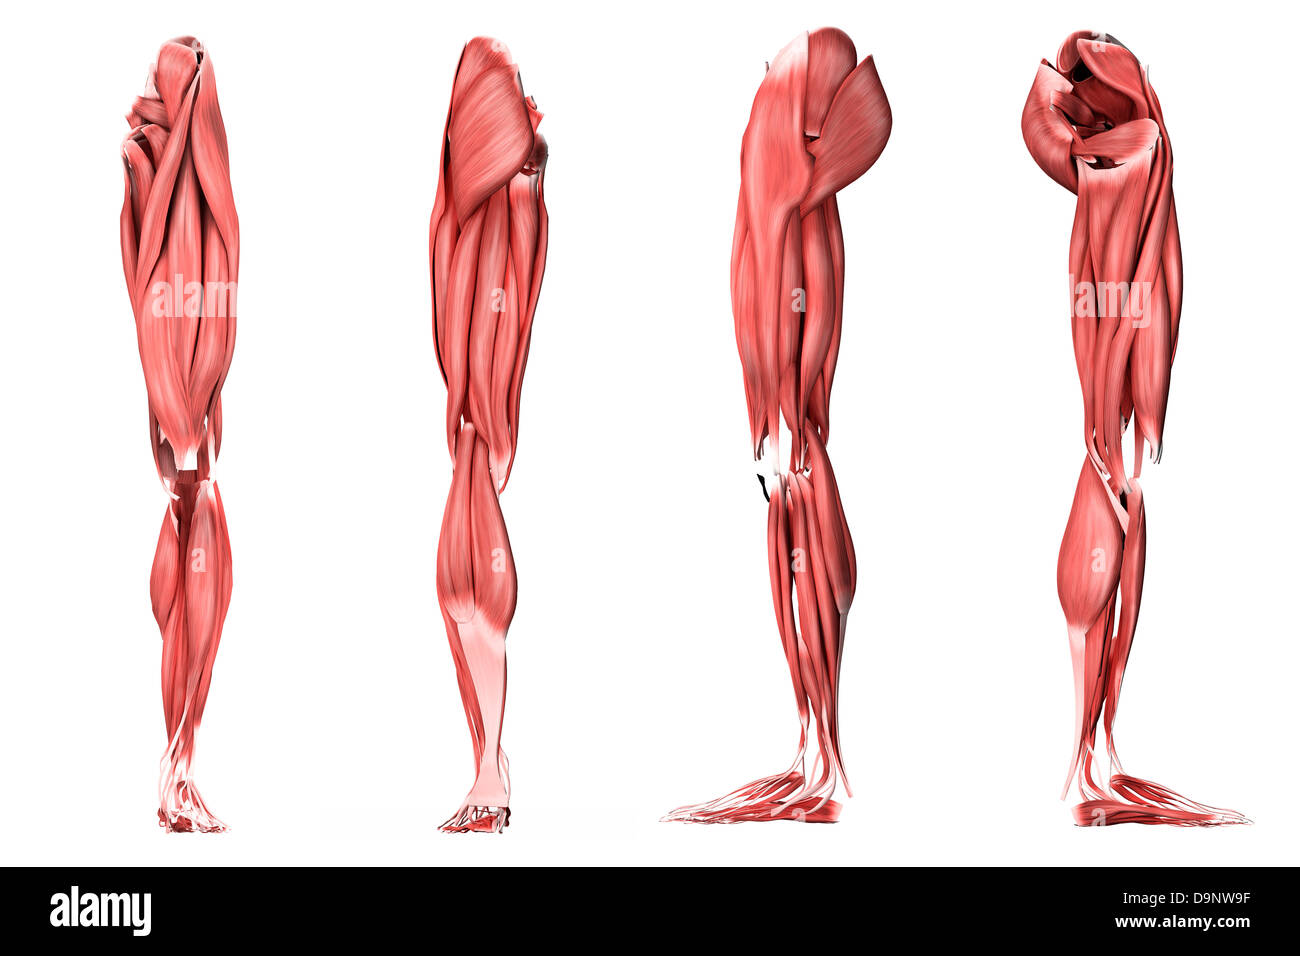 Leg Muscles Stock Photos Leg Muscles Stock Images Alamy